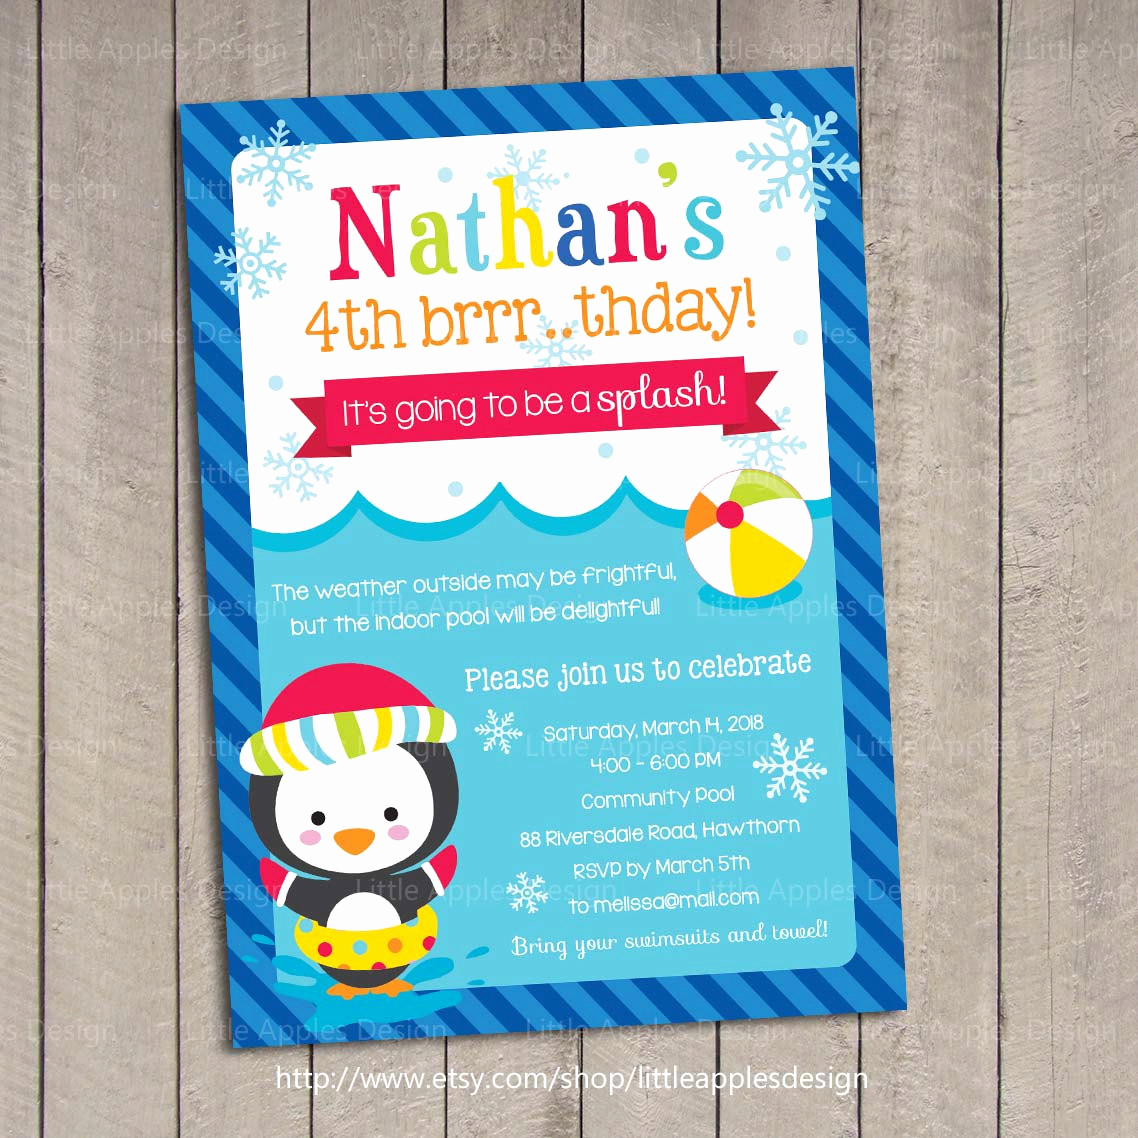 Kids Pool Party Invitation Lovely Winter Kids Pool Party Invitation Winter Pool by Dreamyduck